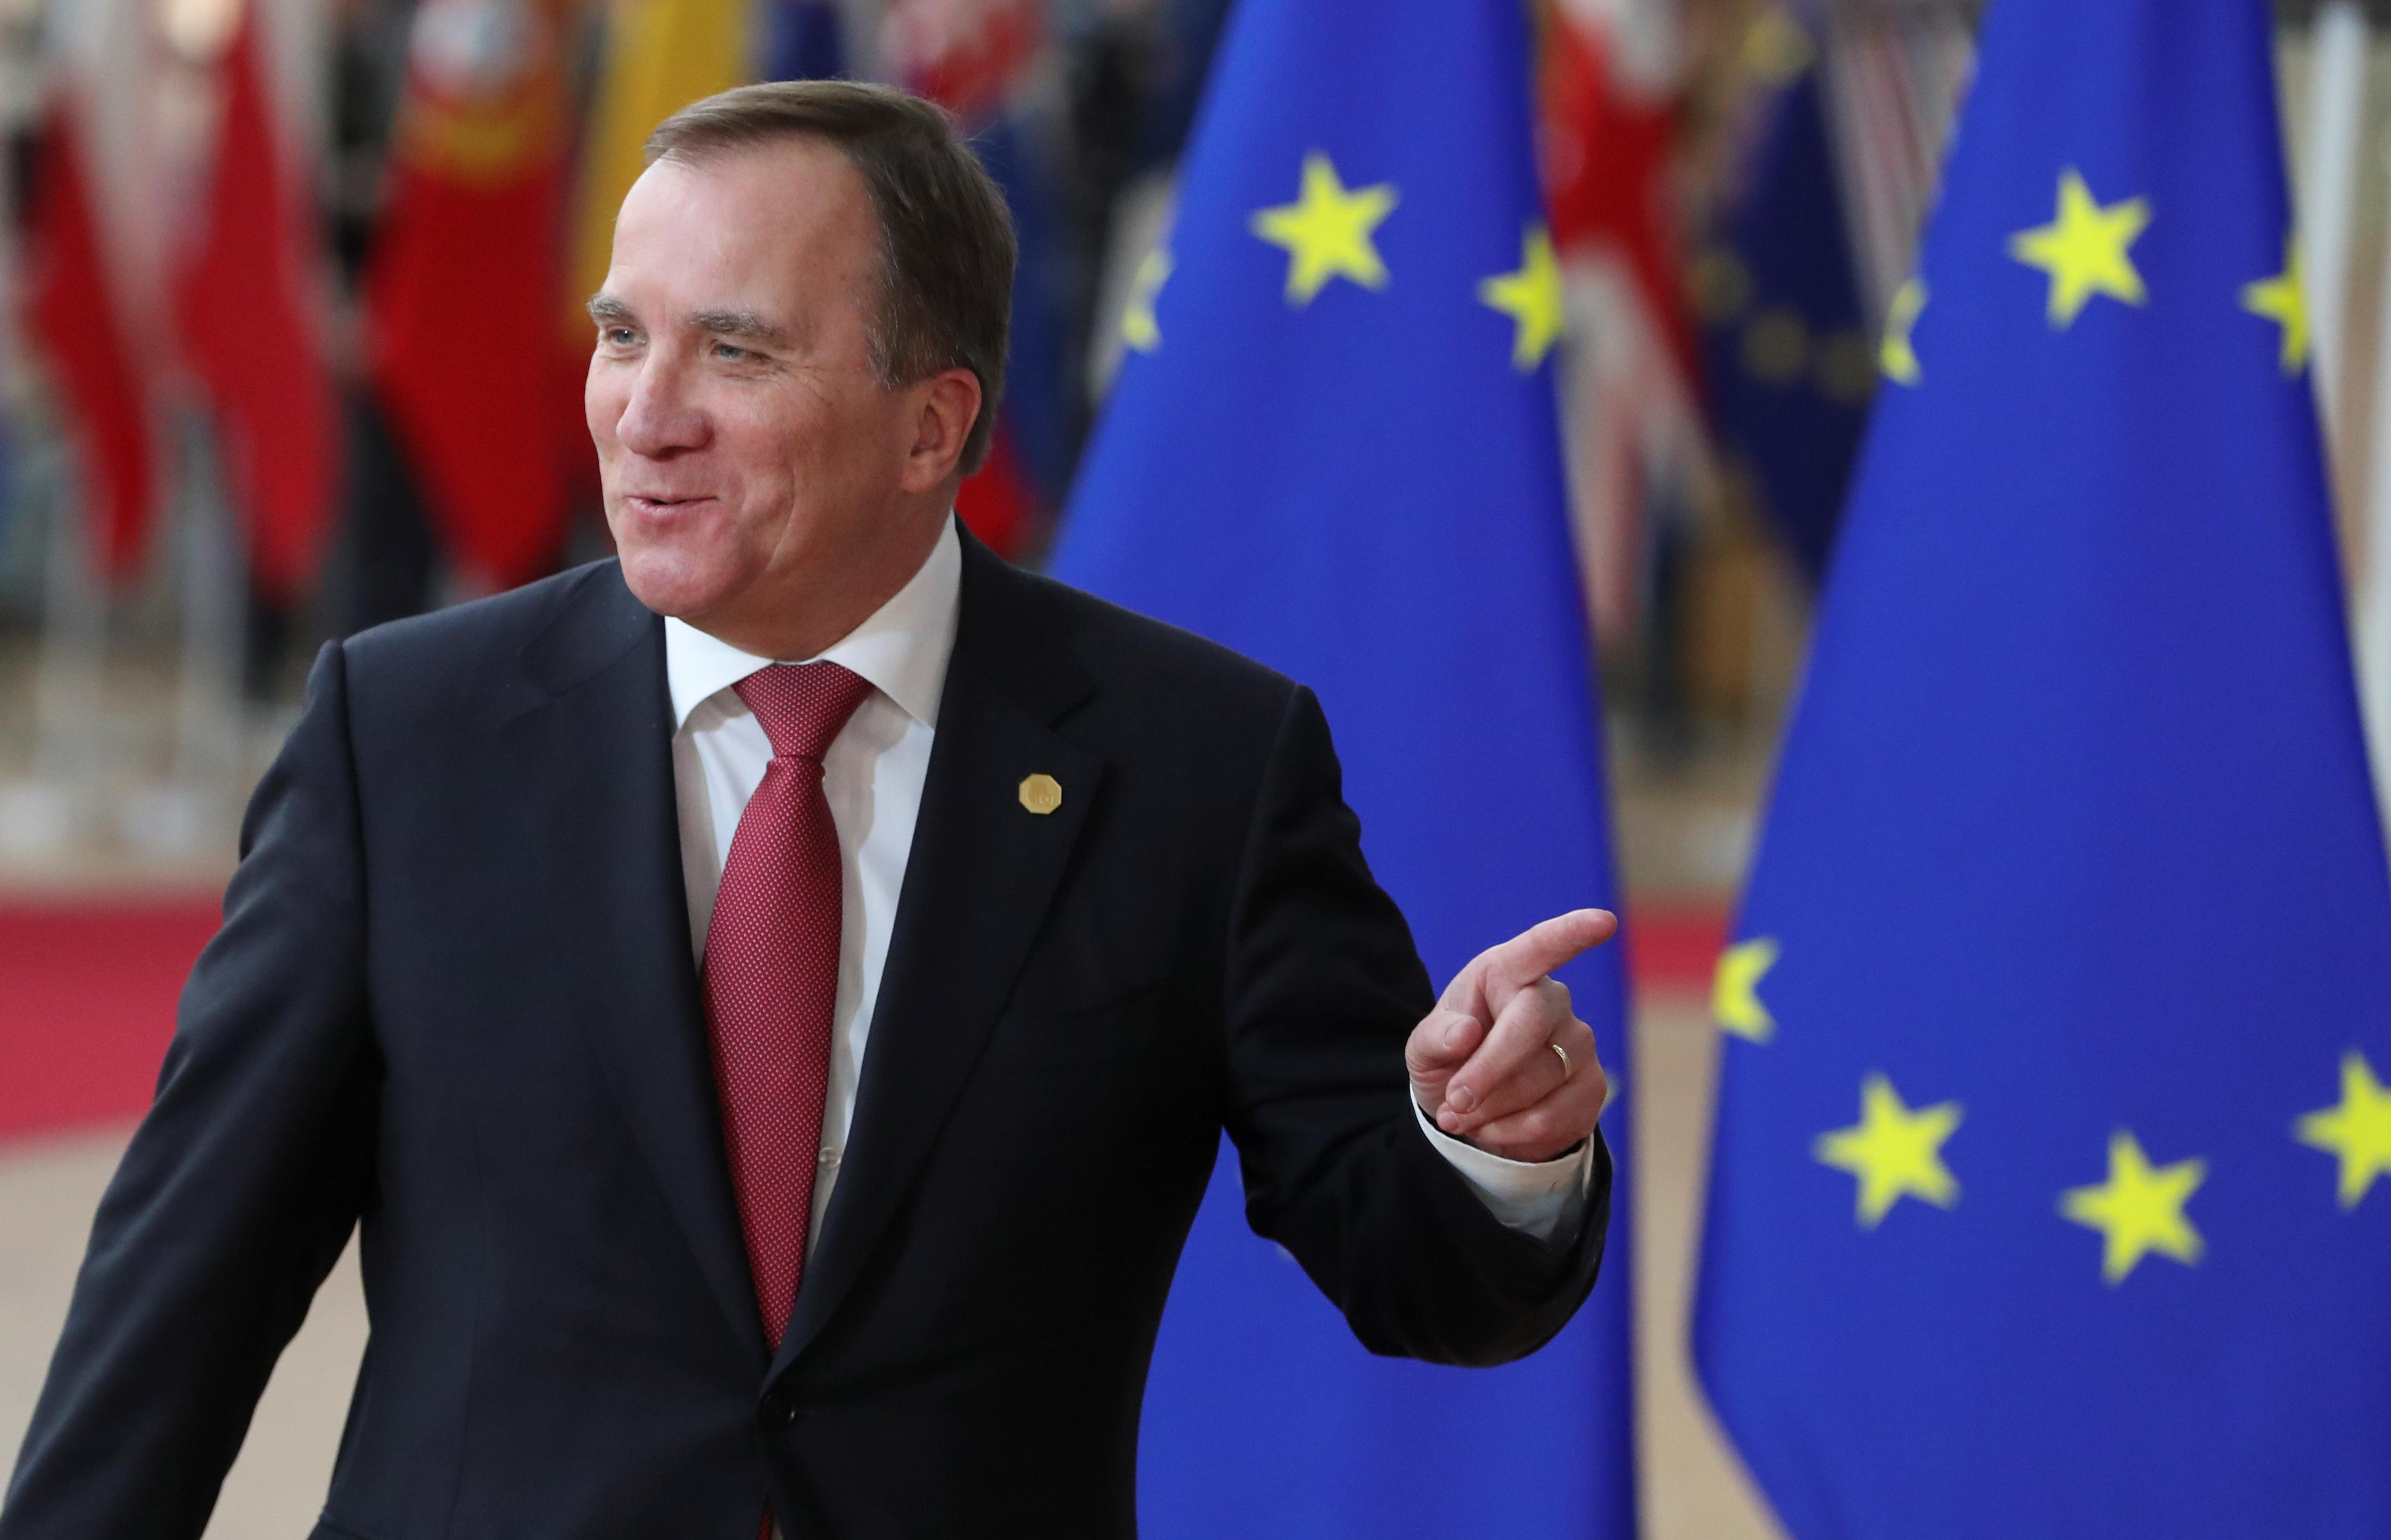 Sweden PM: Brexit will happen now, little time for trade deal